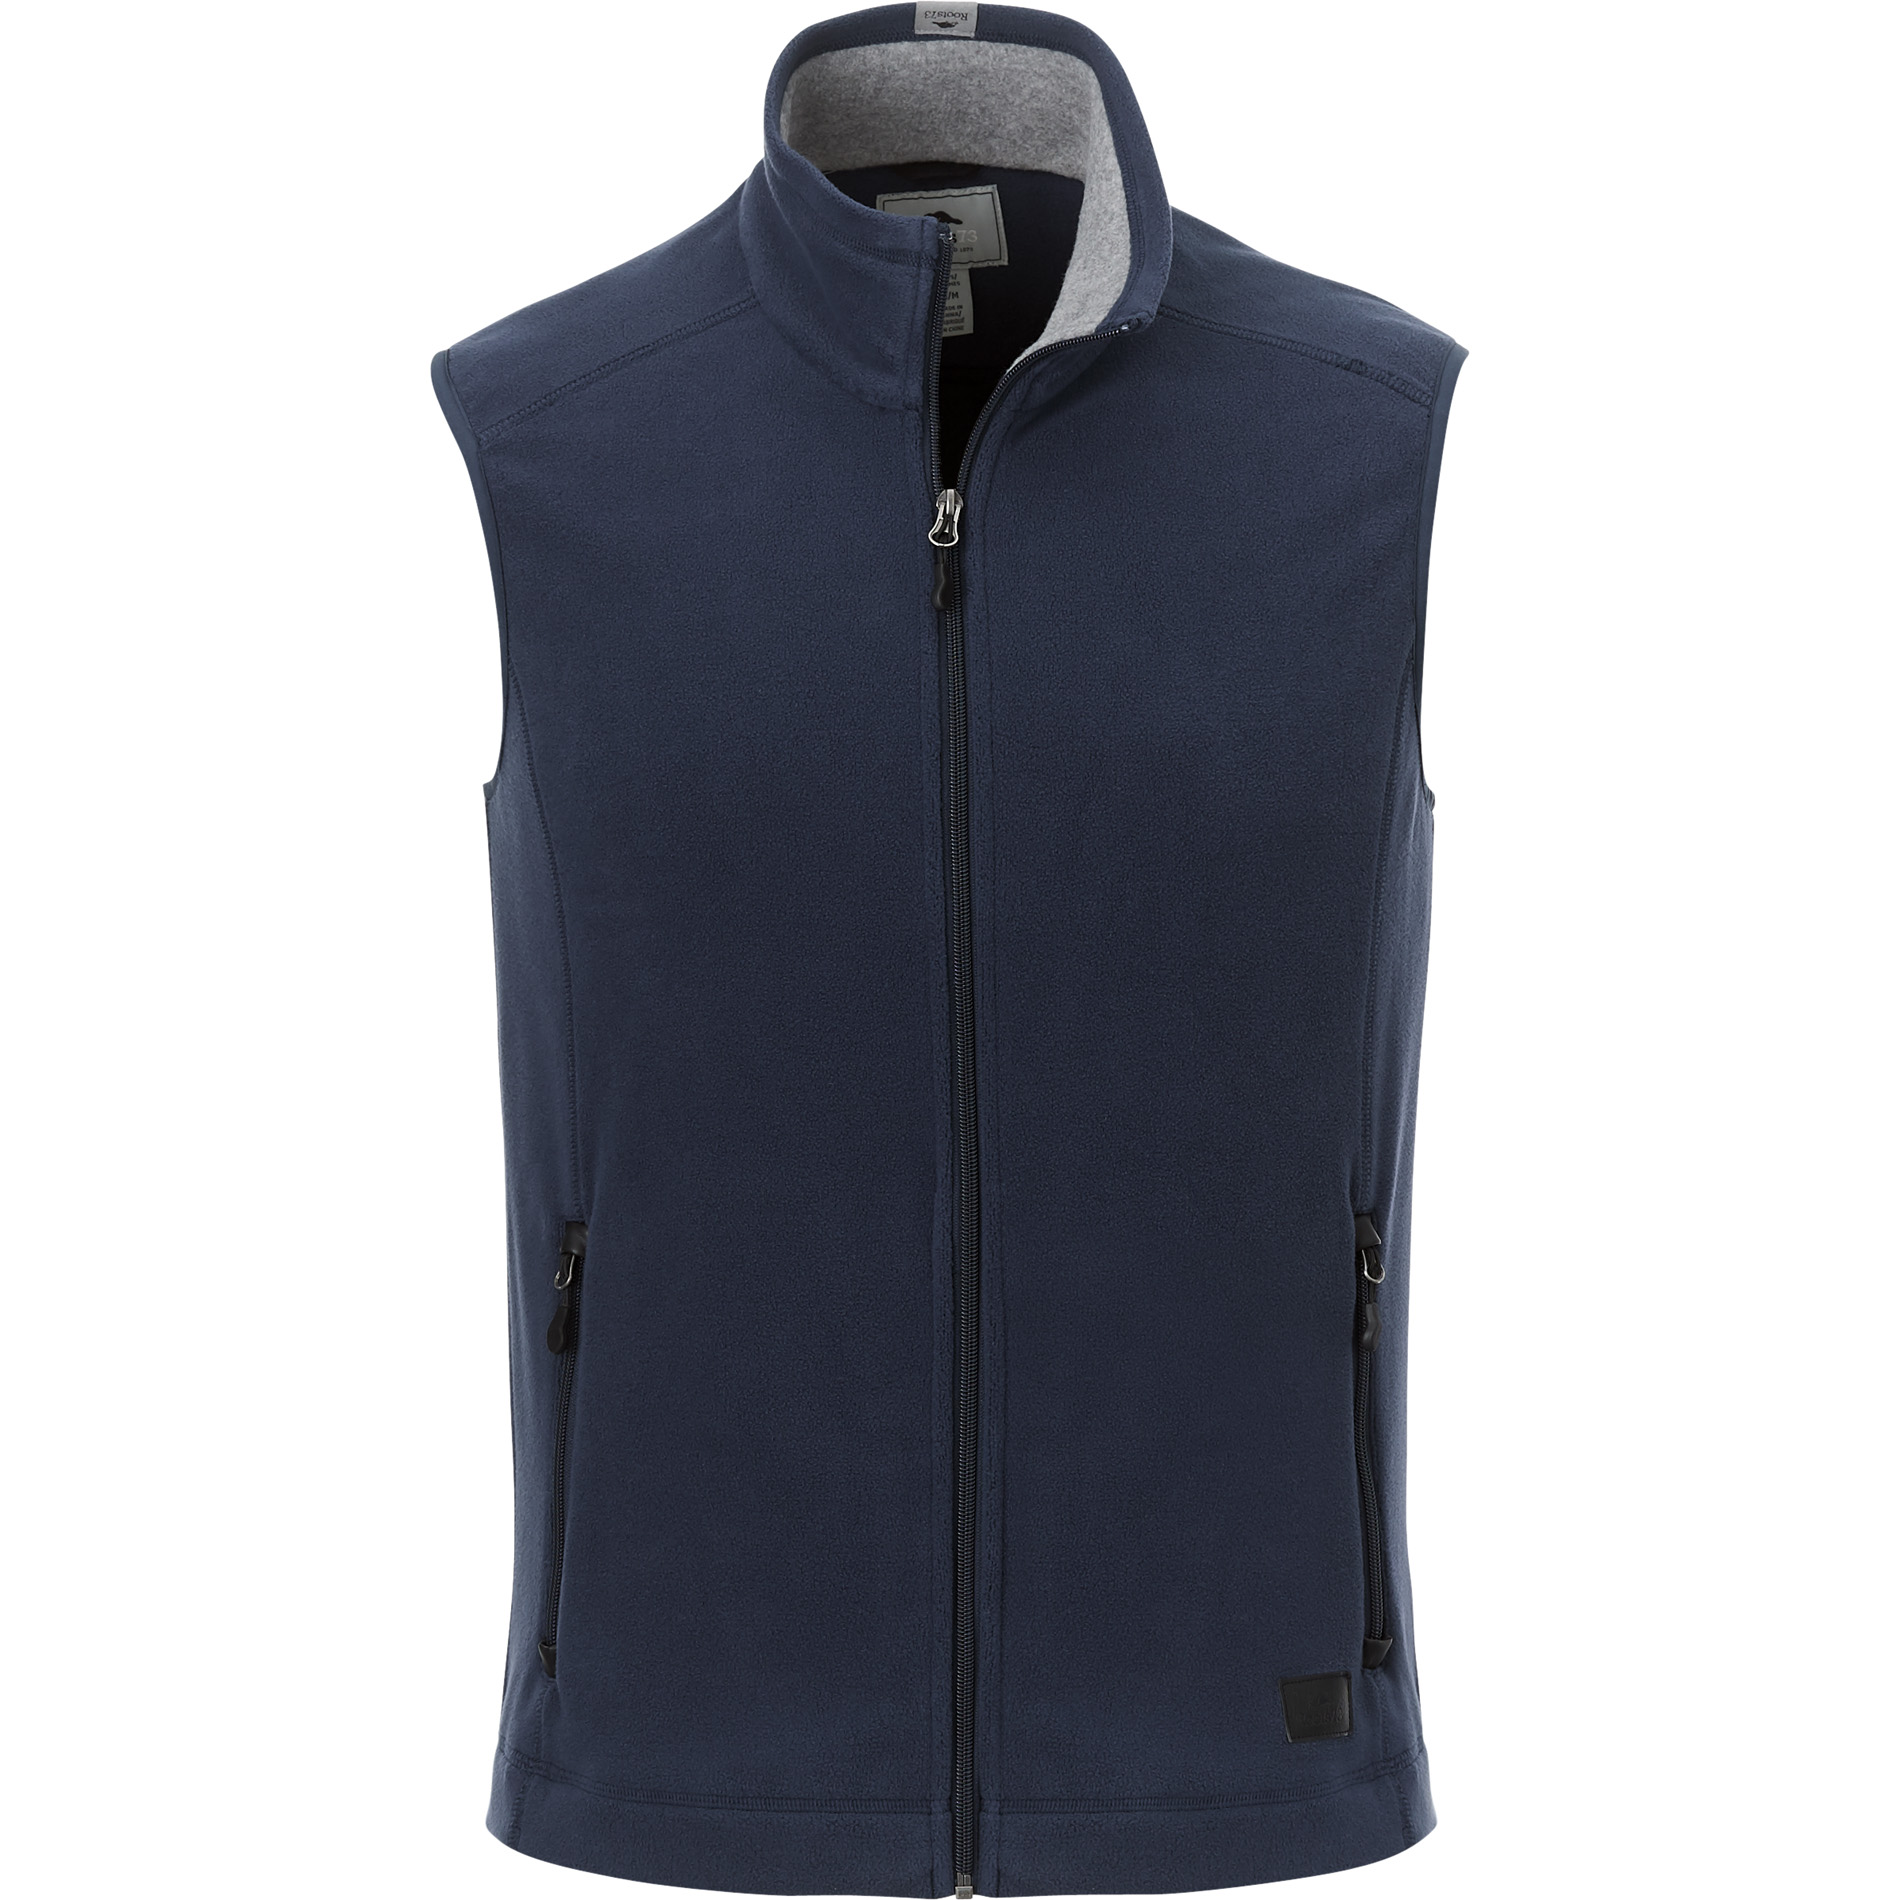 Roots73 TM18505 - Men's Willowbeach Microfleece Vest